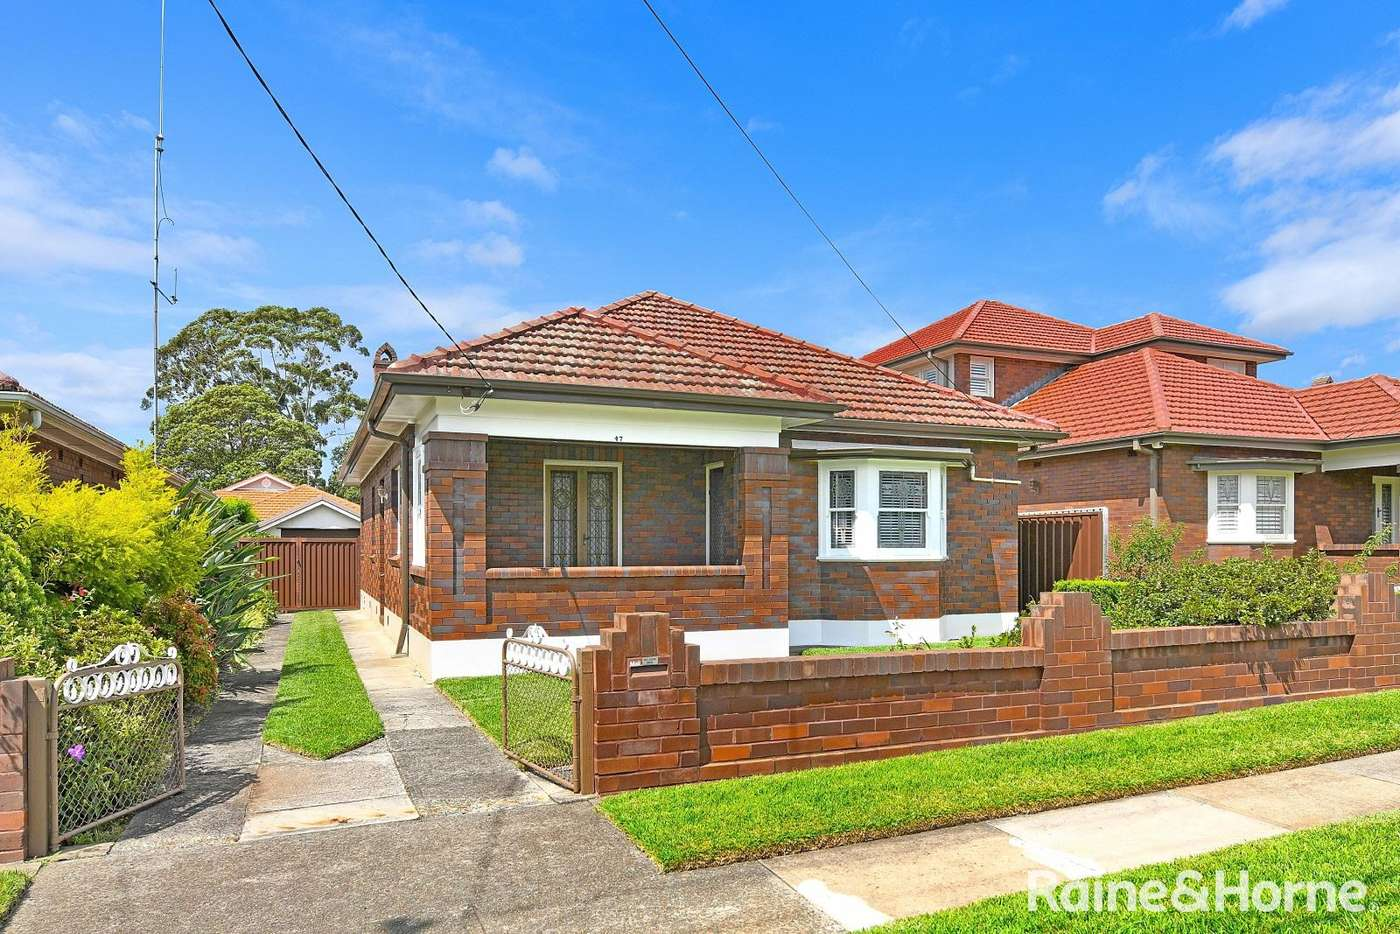 Main view of Homely house listing, 47 Macnamara Ave, Concord NSW 2137